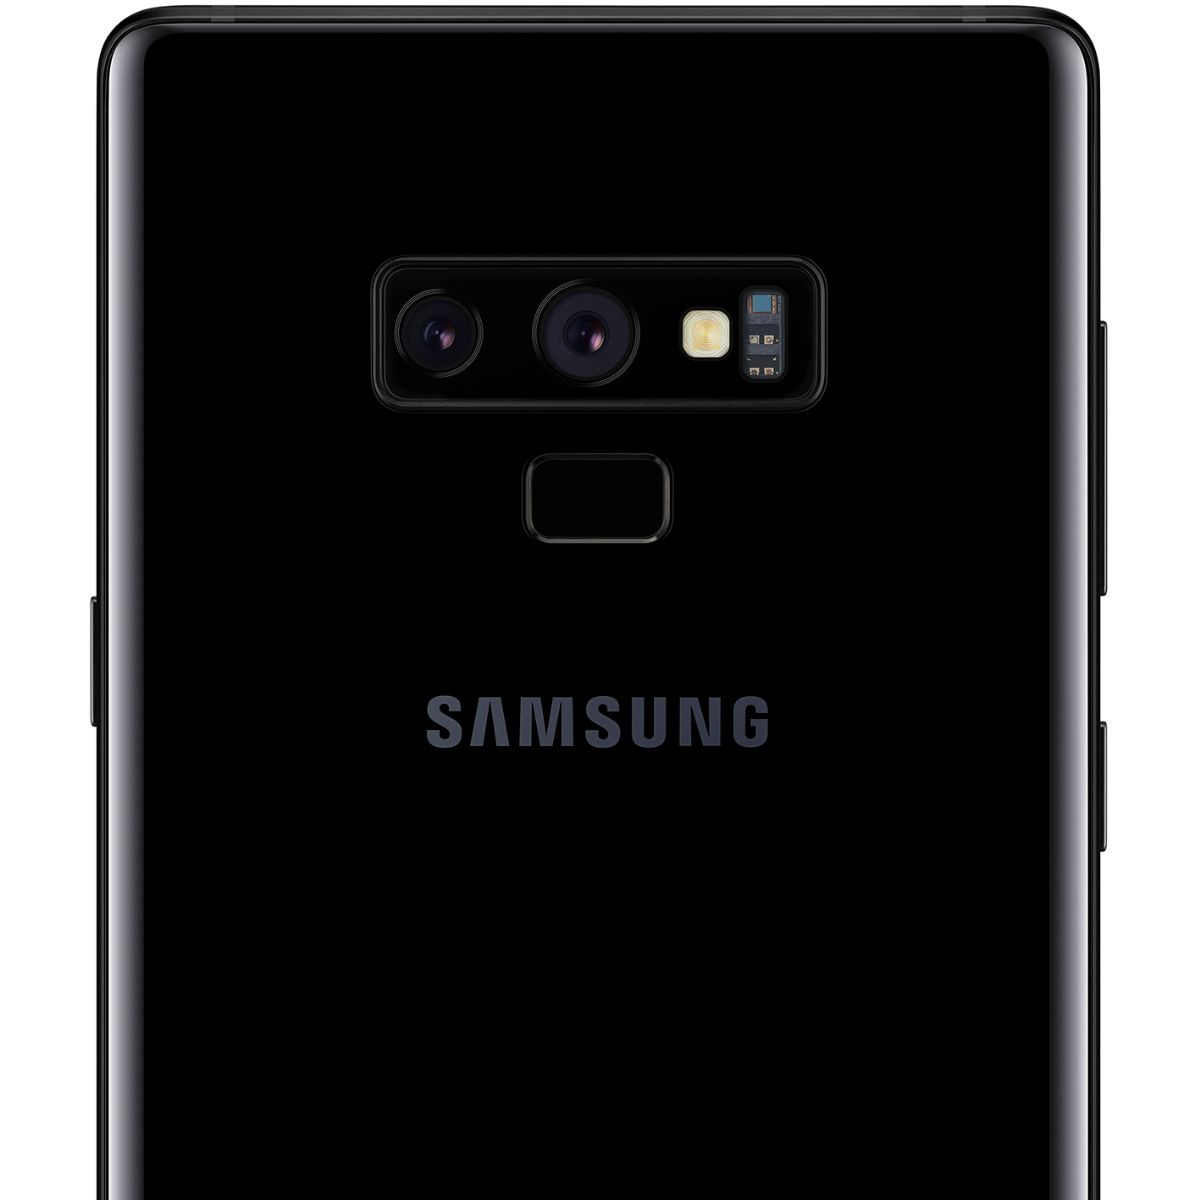 Androidguys Android News And Opinion Page 6 Samsung Galaxy S9 Free Anker Powerbank Mah 10000 Purple Cameras Are One Area Where Has Always Been Known To Excel The Plus Brought Dual Aperture Lenses That Have Ability